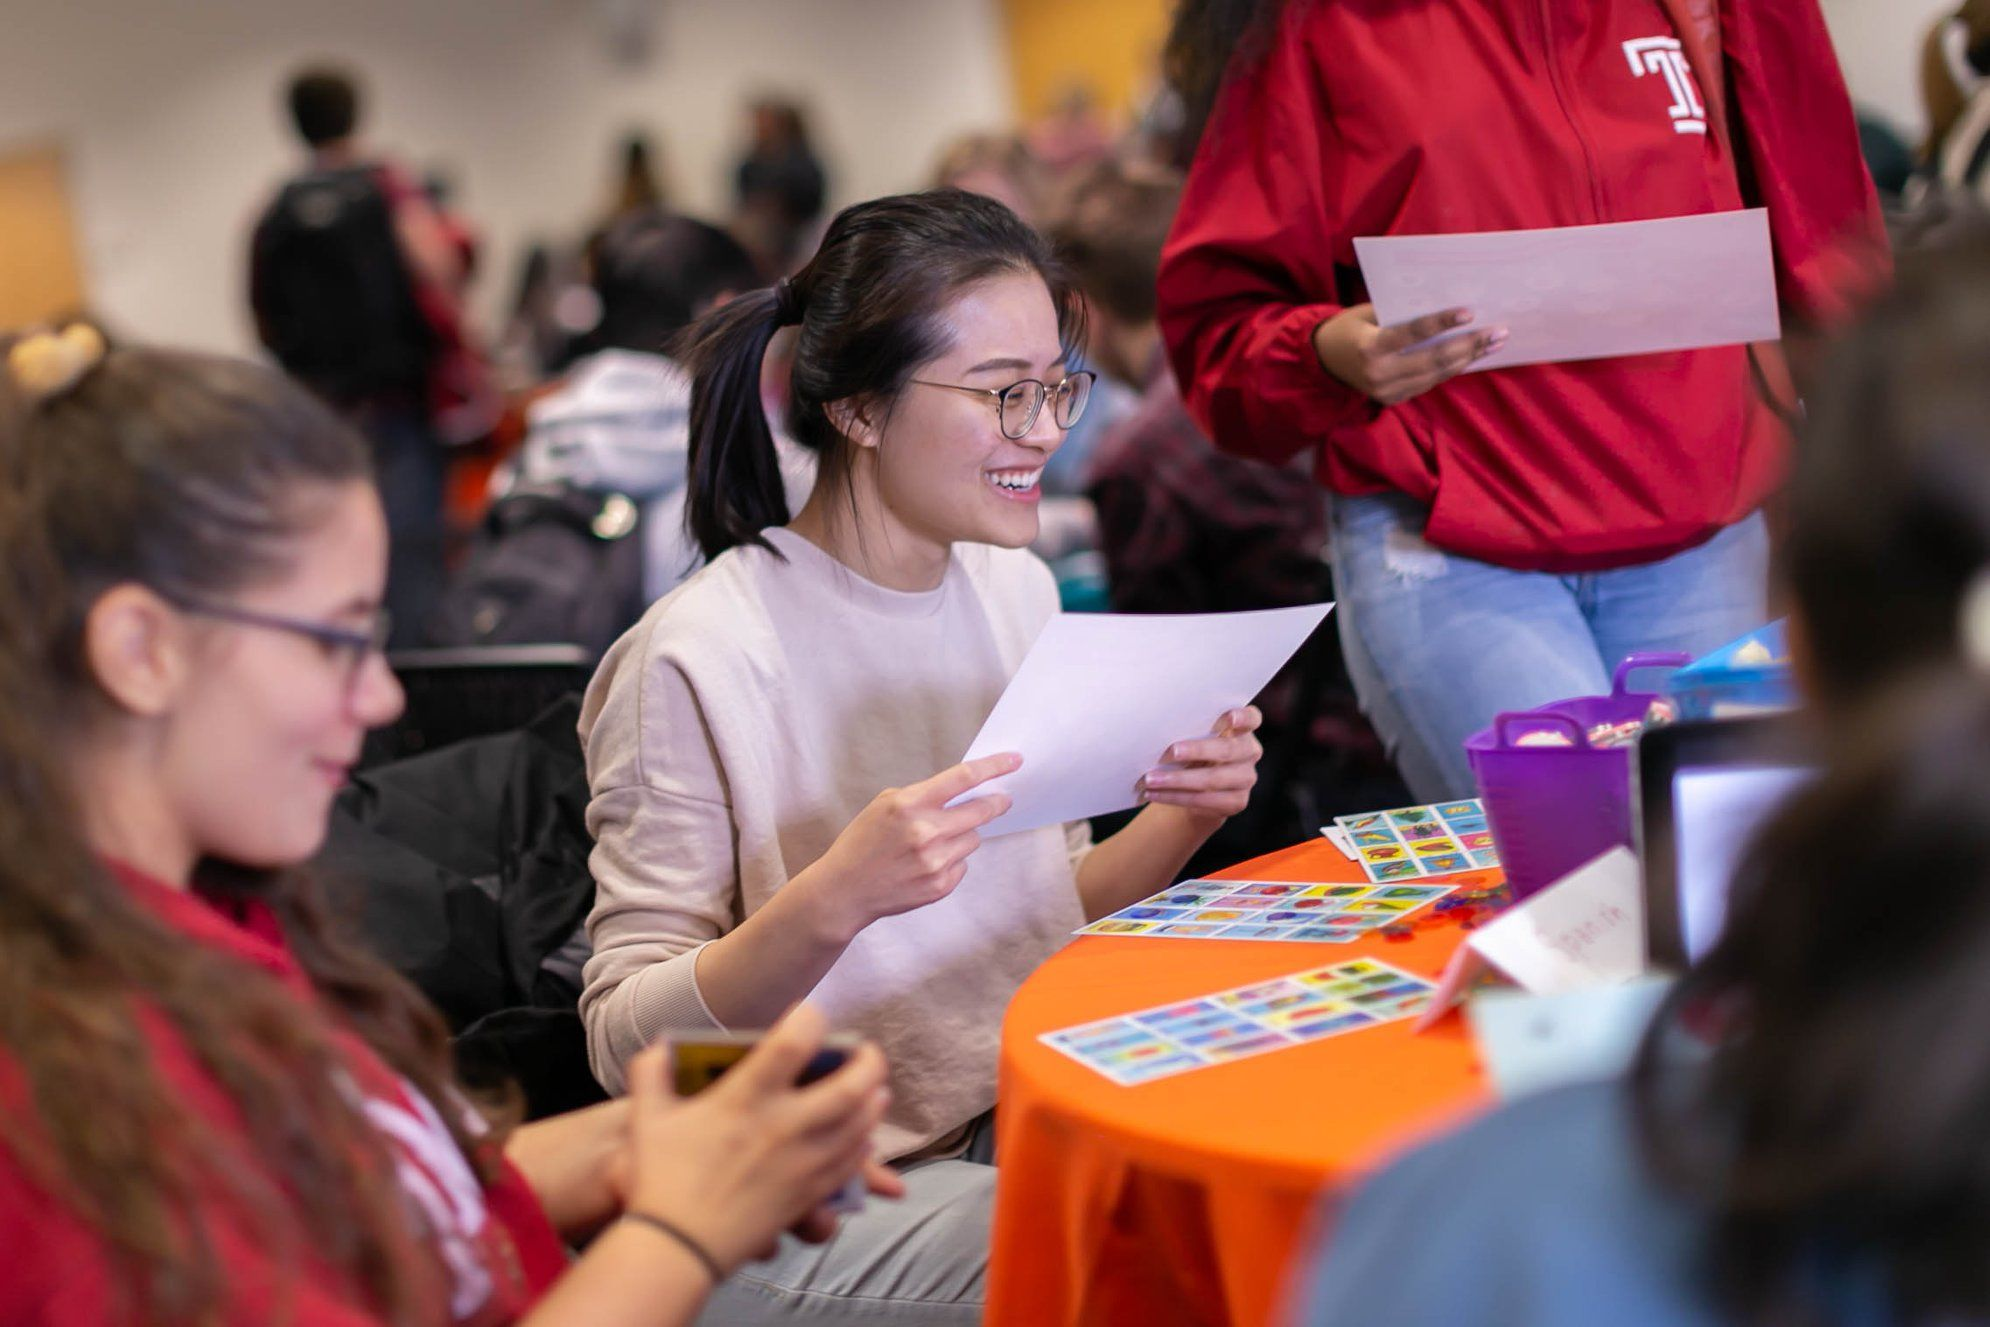 Student enjoying activities at Temple Lingo table